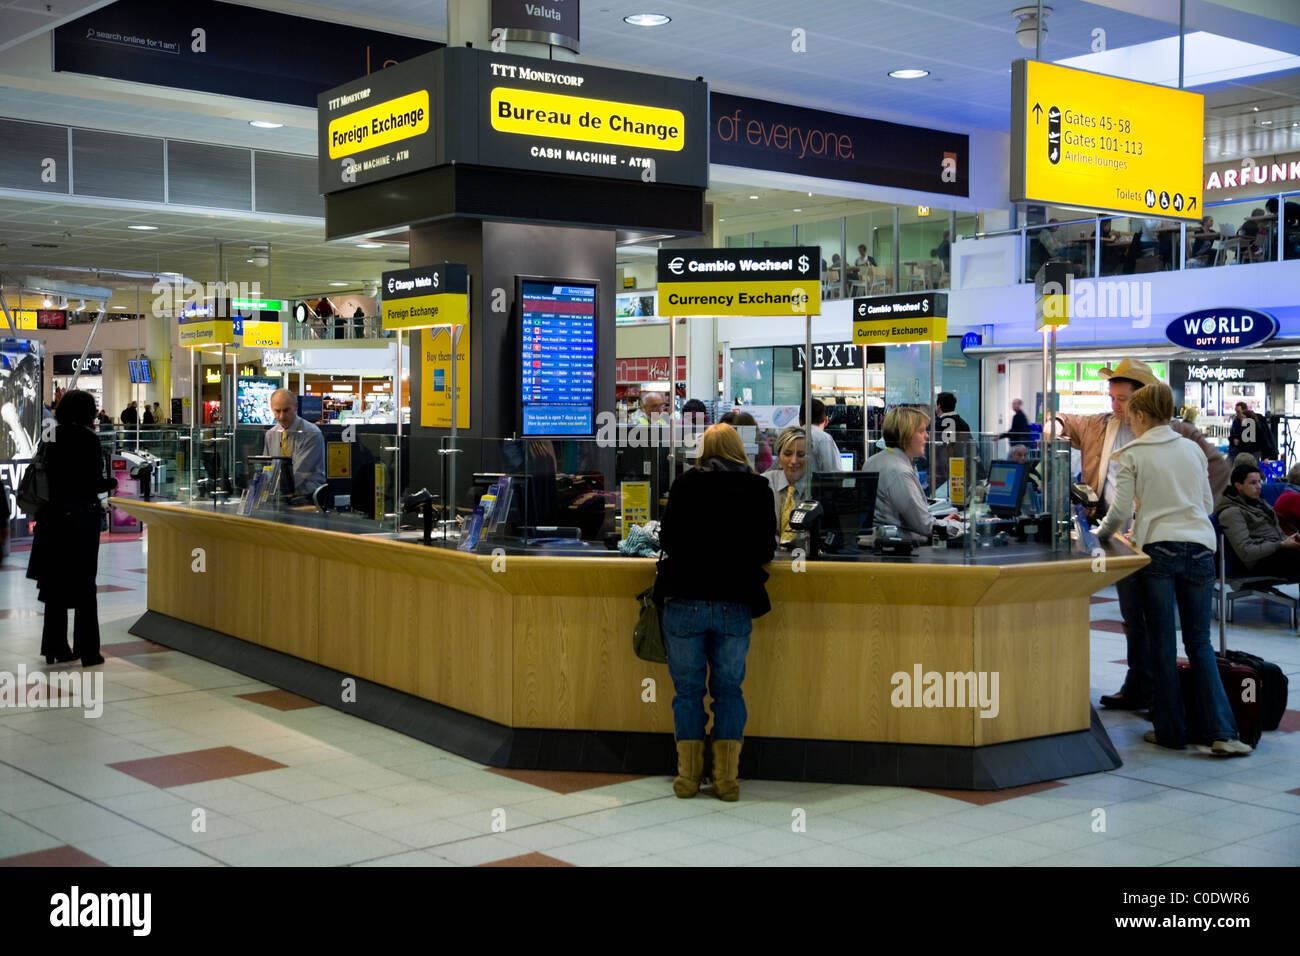 Bureau De Change At Gatwick Airport